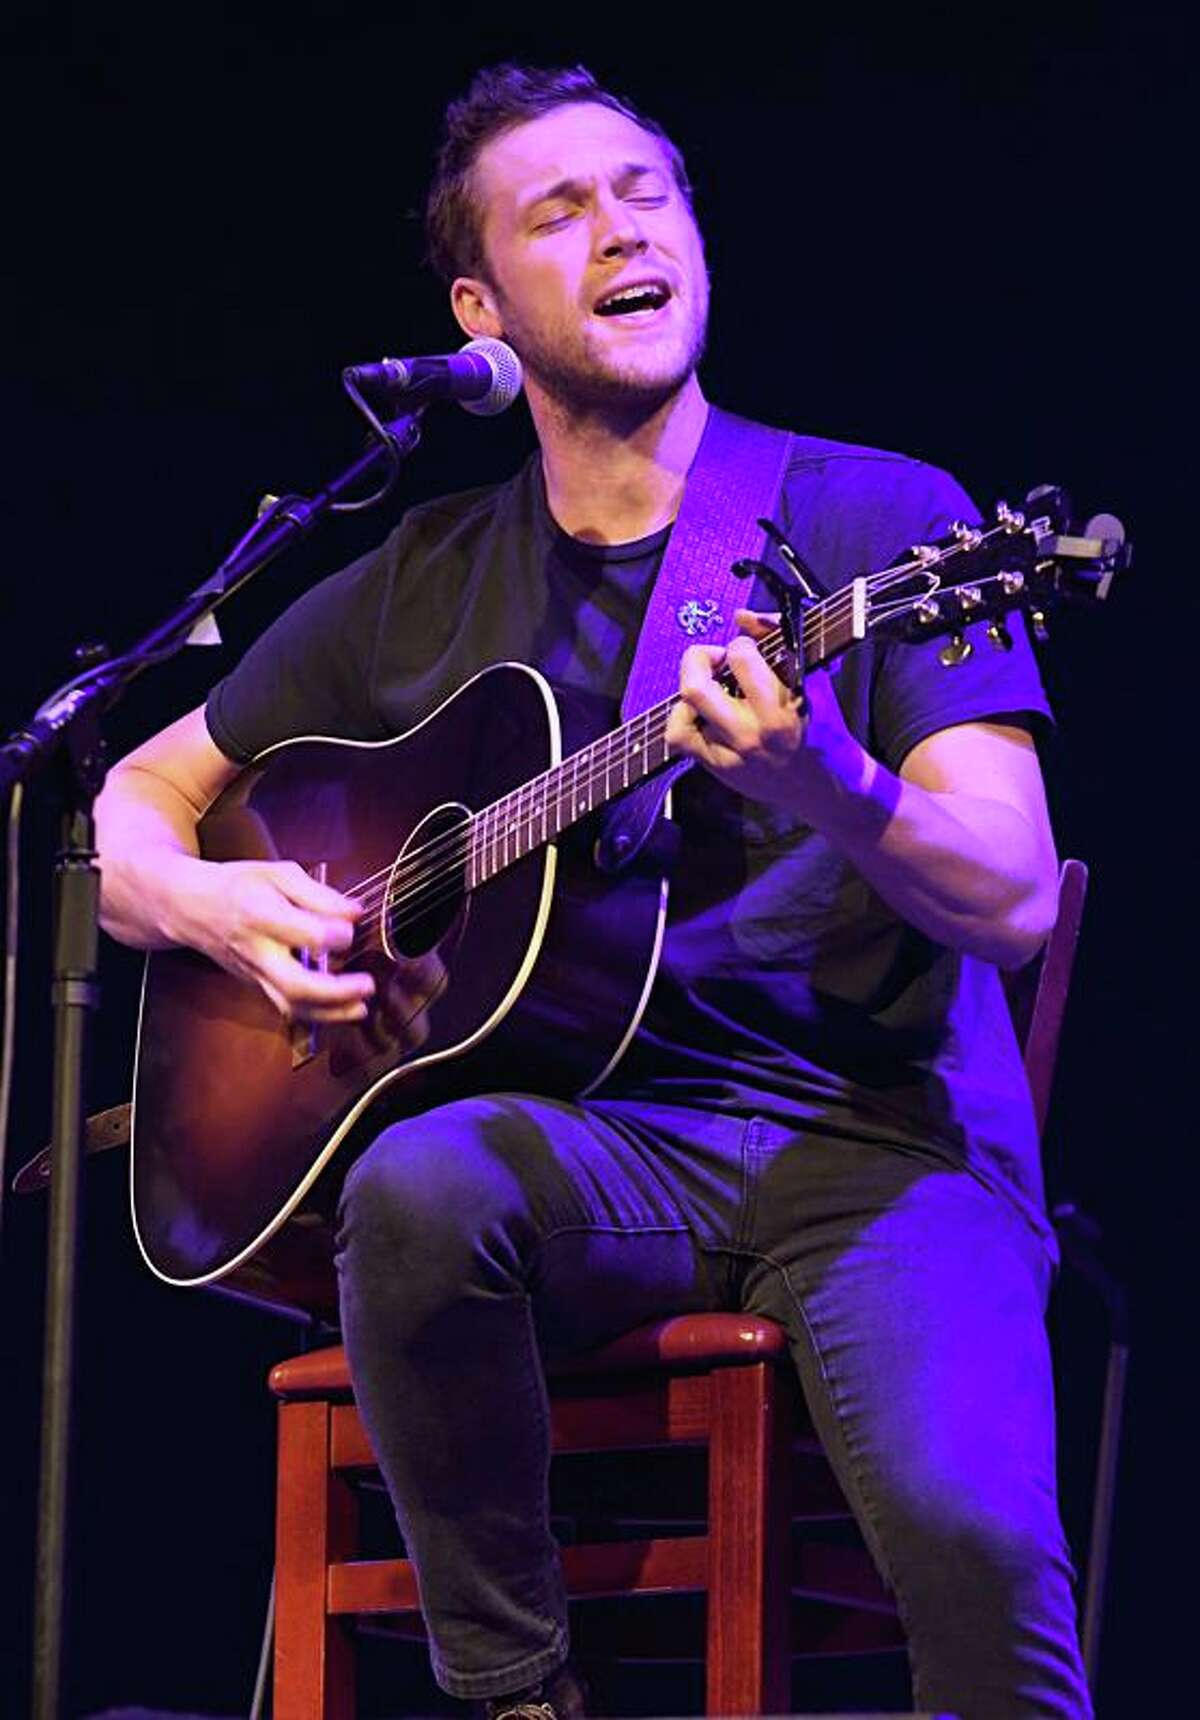 Singer, songwriter and actor Phillip Phillips is shown performing on stage at the Infinity Music Hall in Hartford on Jan. 18, 2020. Phillip is best known for winning the eleventh season of American Idol back in 2012. His coronation song,